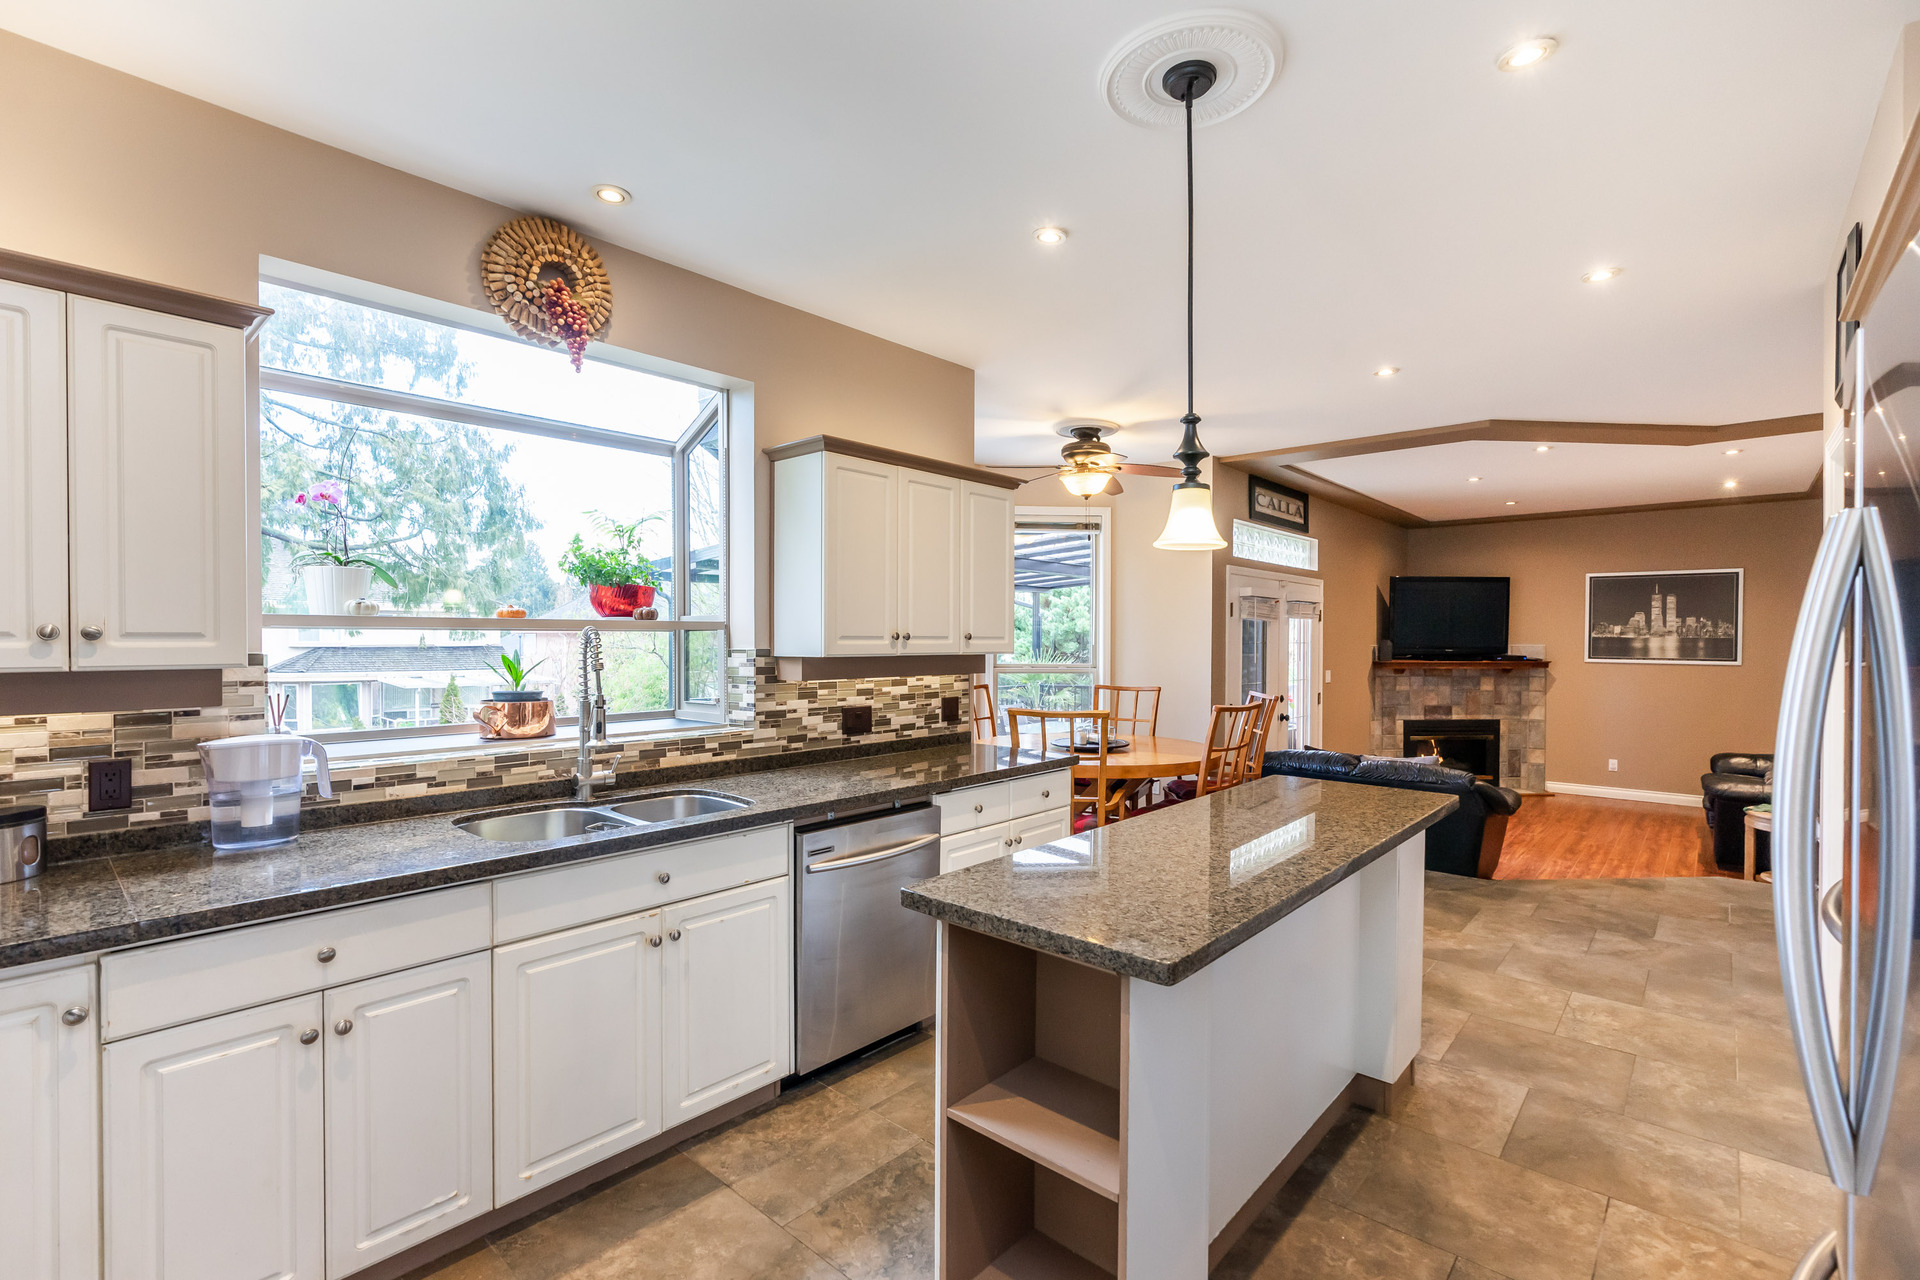 53869_8 at 16237 111 A Avenue, Fraser Heights, North Surrey